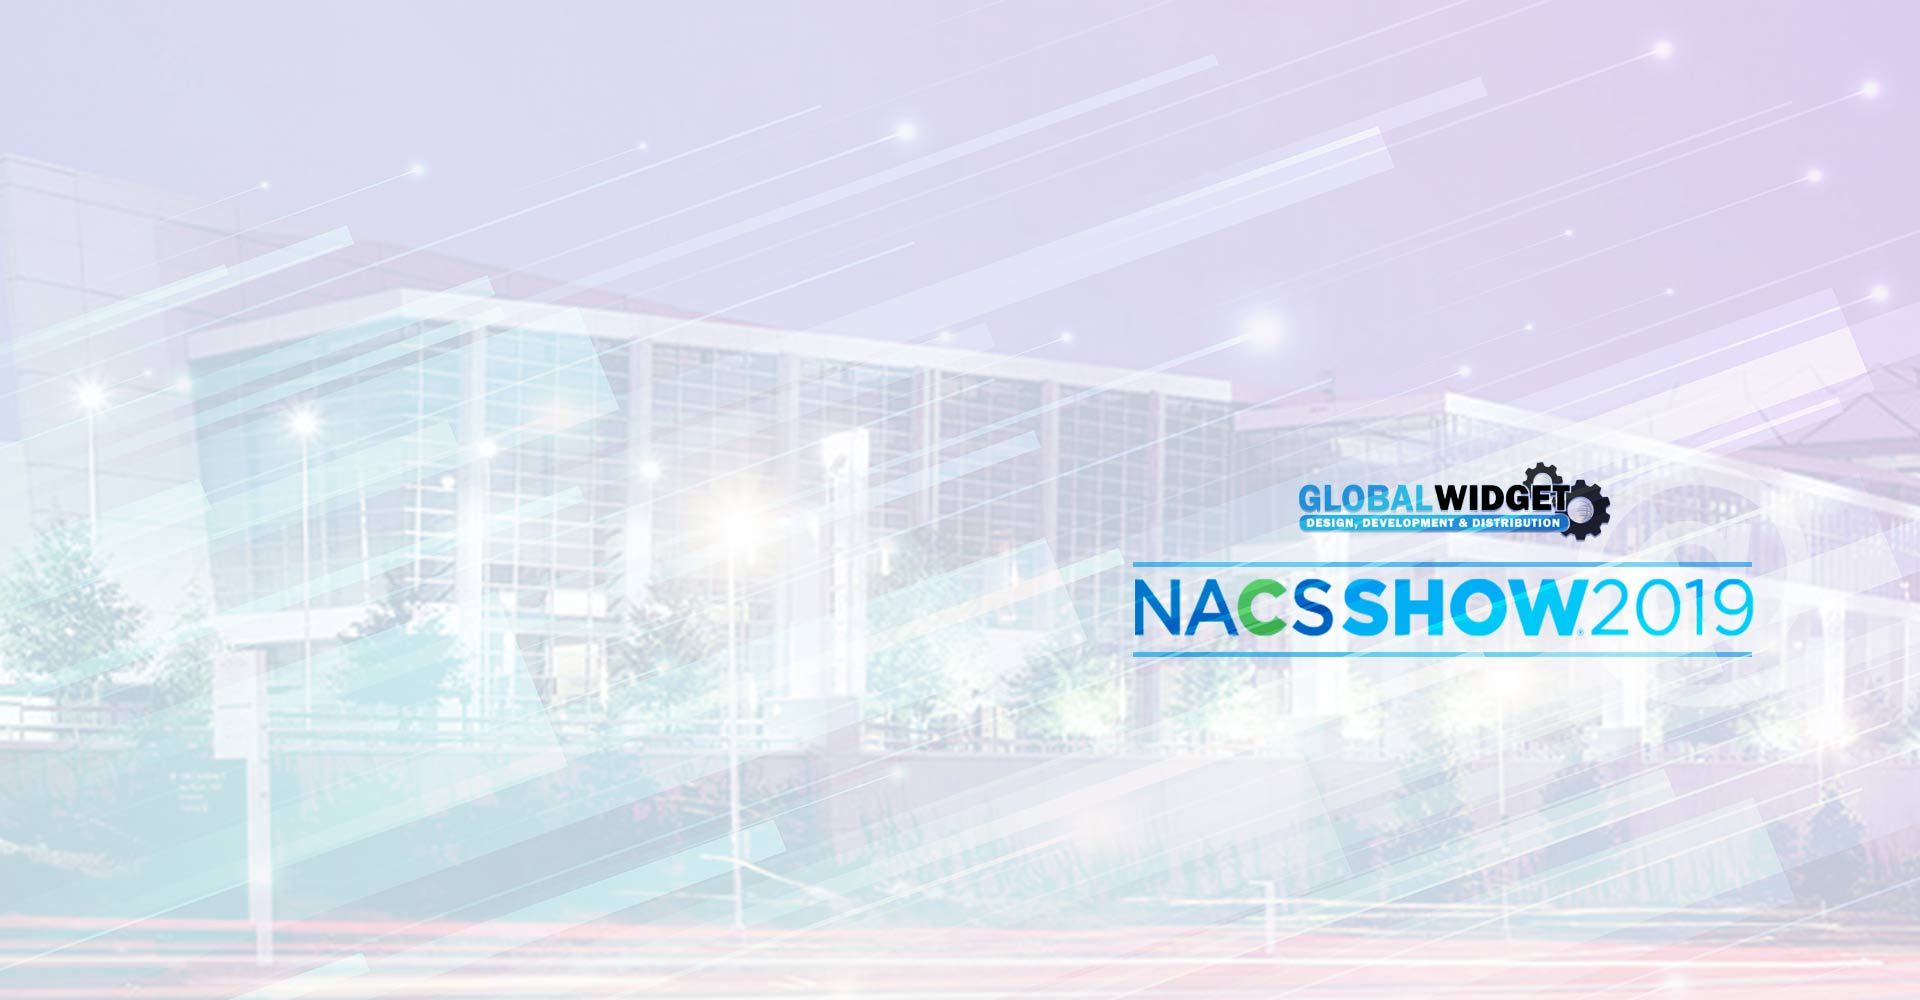 Global Widget at NACS 2019